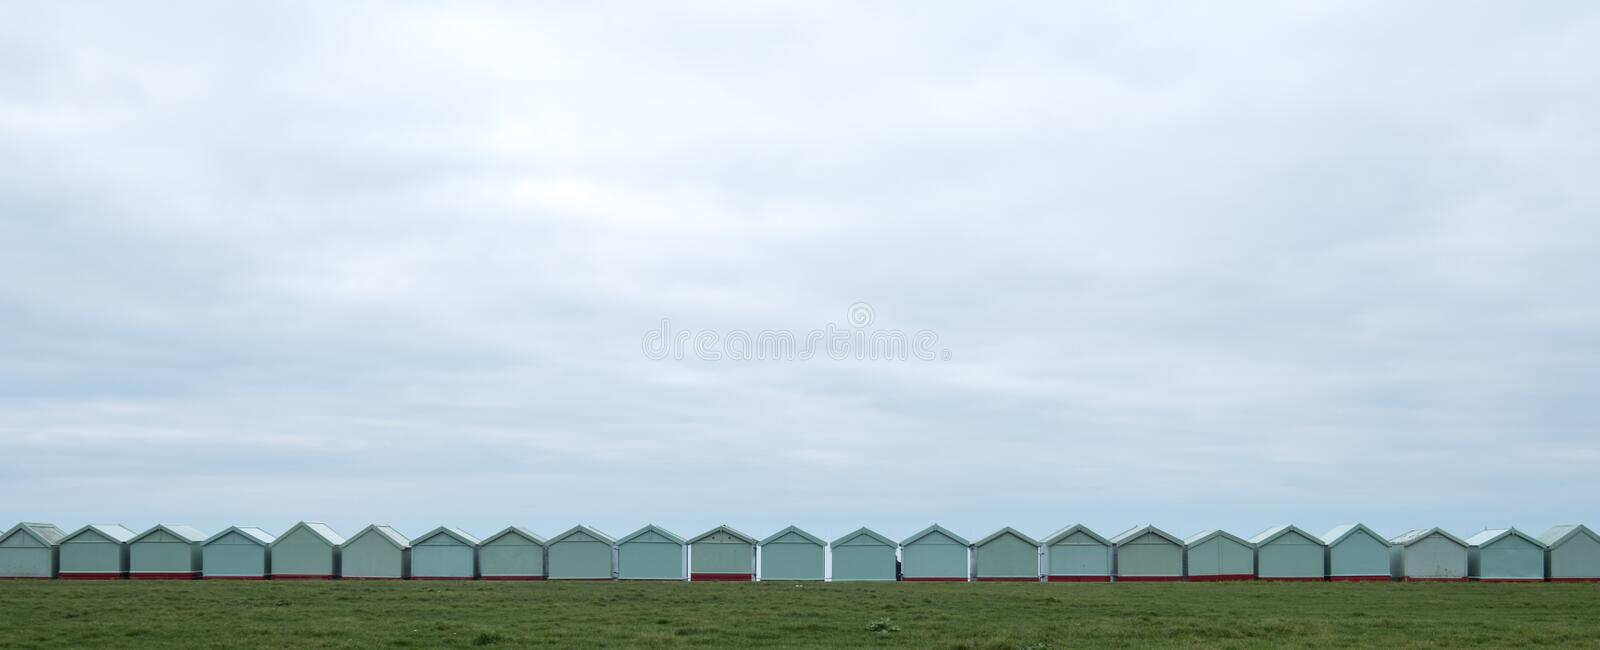 Row of beach huts on the sea front in Hove, Sussex UK. Row of beach huts on the sea front in Hove, East Sussex uK royalty free stock image